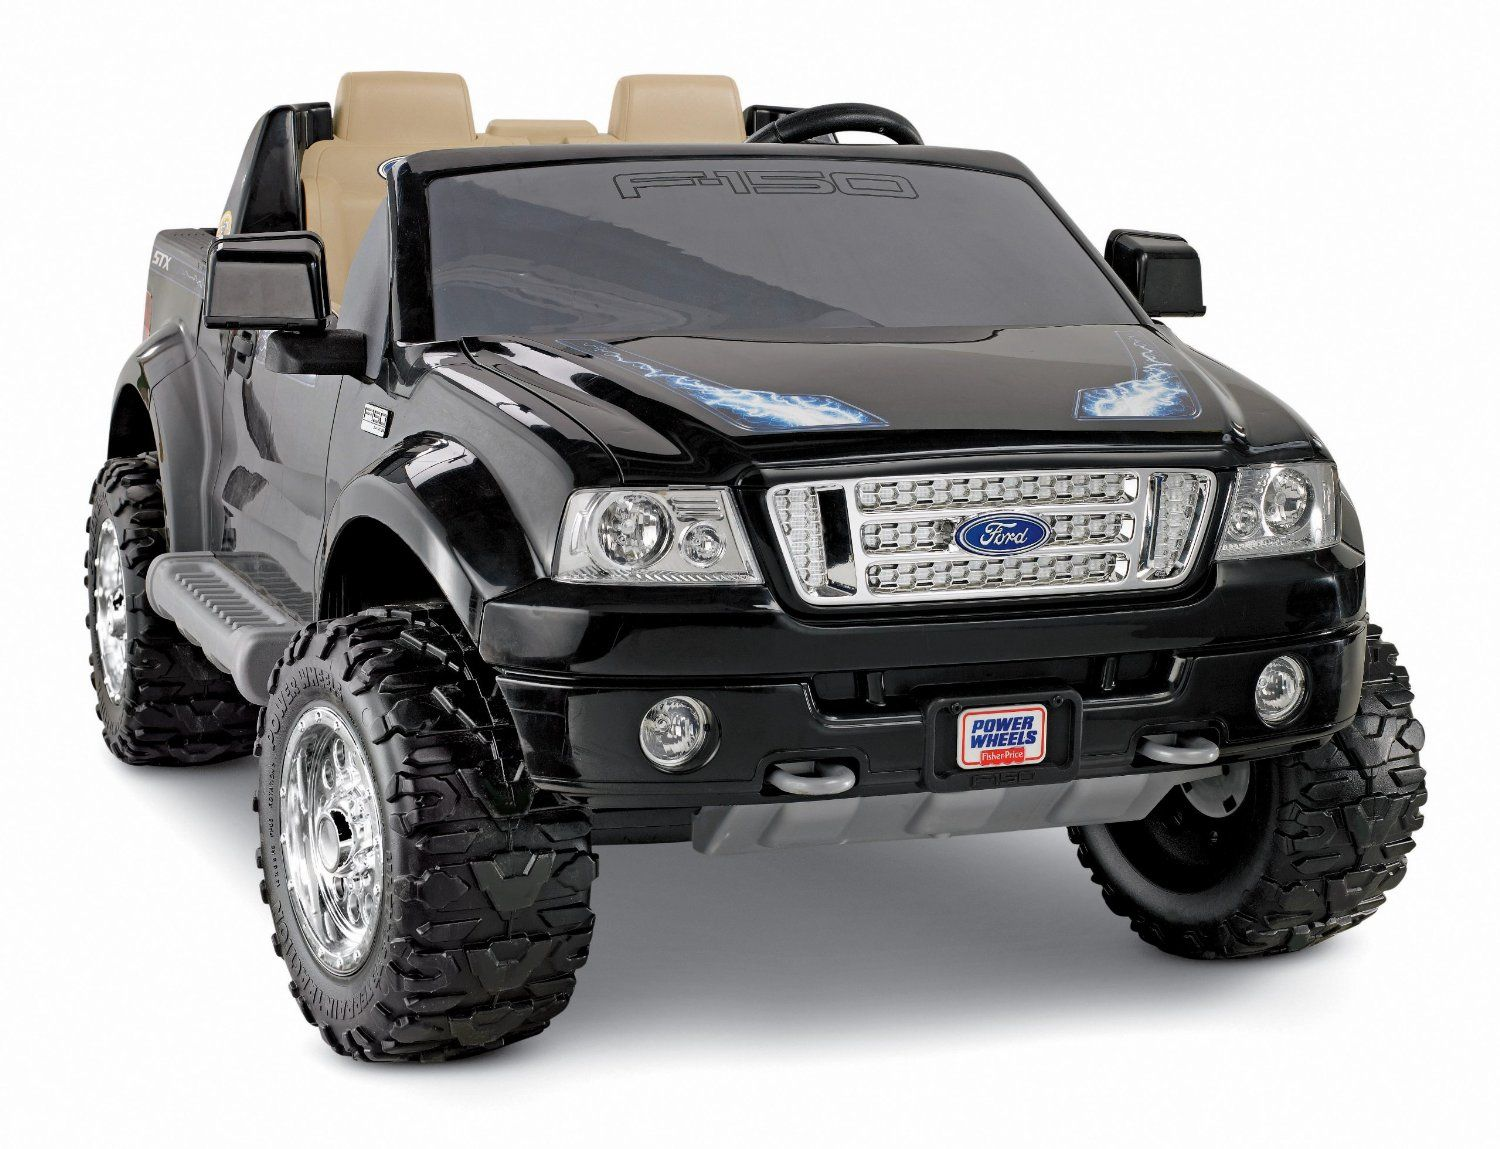 Power Wheels Ford F150 Truck Battery Powered Car Power Wheels